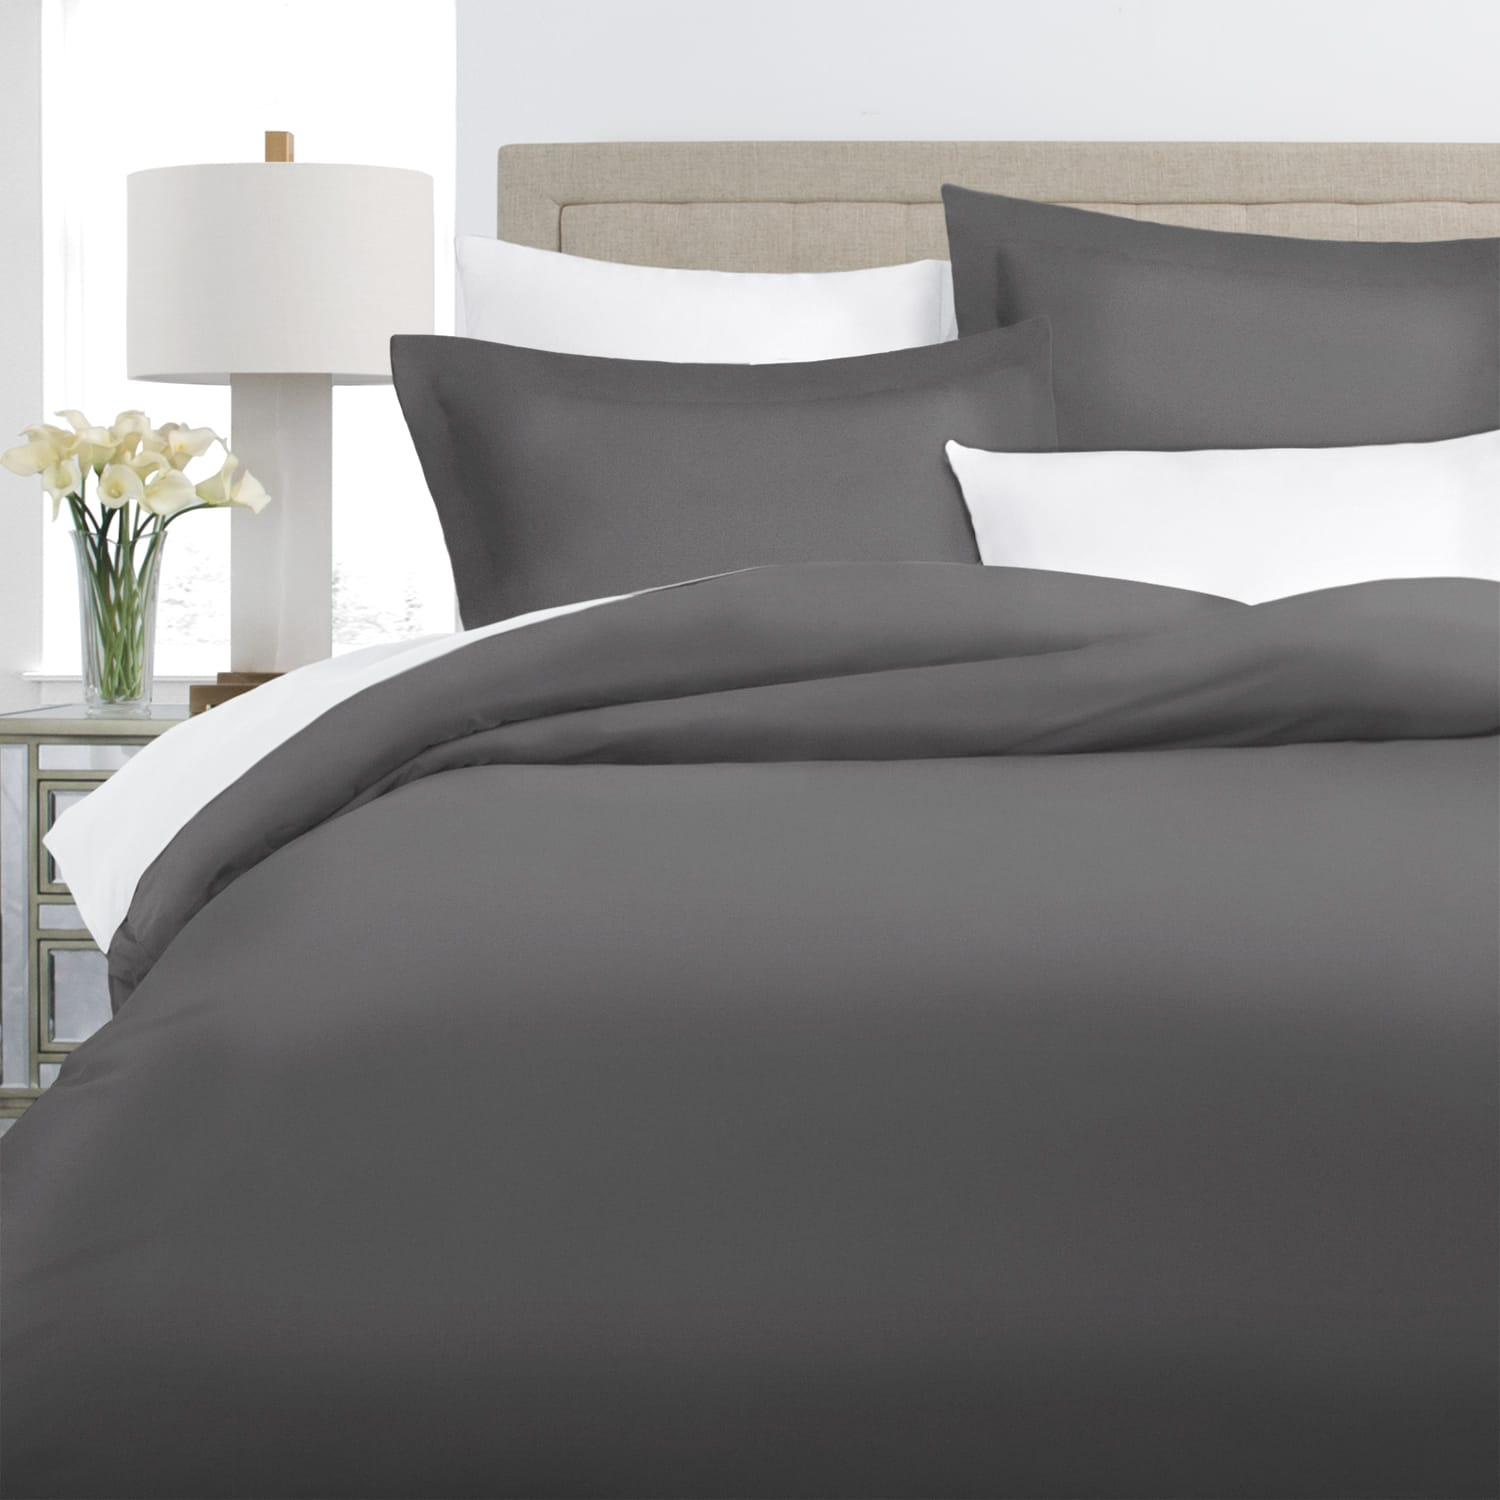 200TC Cotton Duvet Cover Set (Available in 10 Colors & 3 Sizes): Starting at $26 + Free Shipping